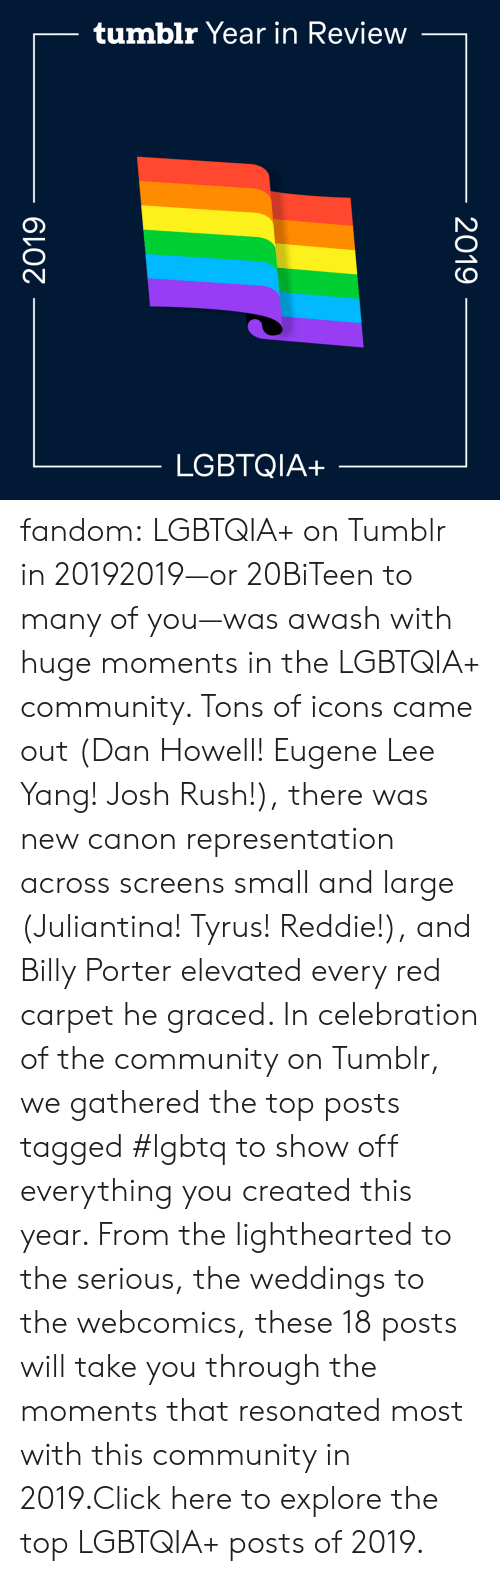 lee: tumblr Year in Review  LGBTQIA+  2019  2019 fandom:  LGBTQIA+ on Tumblr in 20192019—or 20BiTeen to many of you—was awash with huge moments in the LGBTQIA+ community. Tons of icons came out (Dan Howell! Eugene Lee Yang! Josh Rush!), there was new canon representation across screens small and large (Juliantina! Tyrus! Reddie!), and Billy Porter elevated every red carpet he graced. In celebration of the community on Tumblr, we gathered the top posts tagged #lgbtq to show off everything you created this year. From the lighthearted to the serious, the weddings to the webcomics, these 18 posts will take you through the moments that resonated most with this community in 2019.Click here to explore the top LGBTQIA+ posts of 2019.